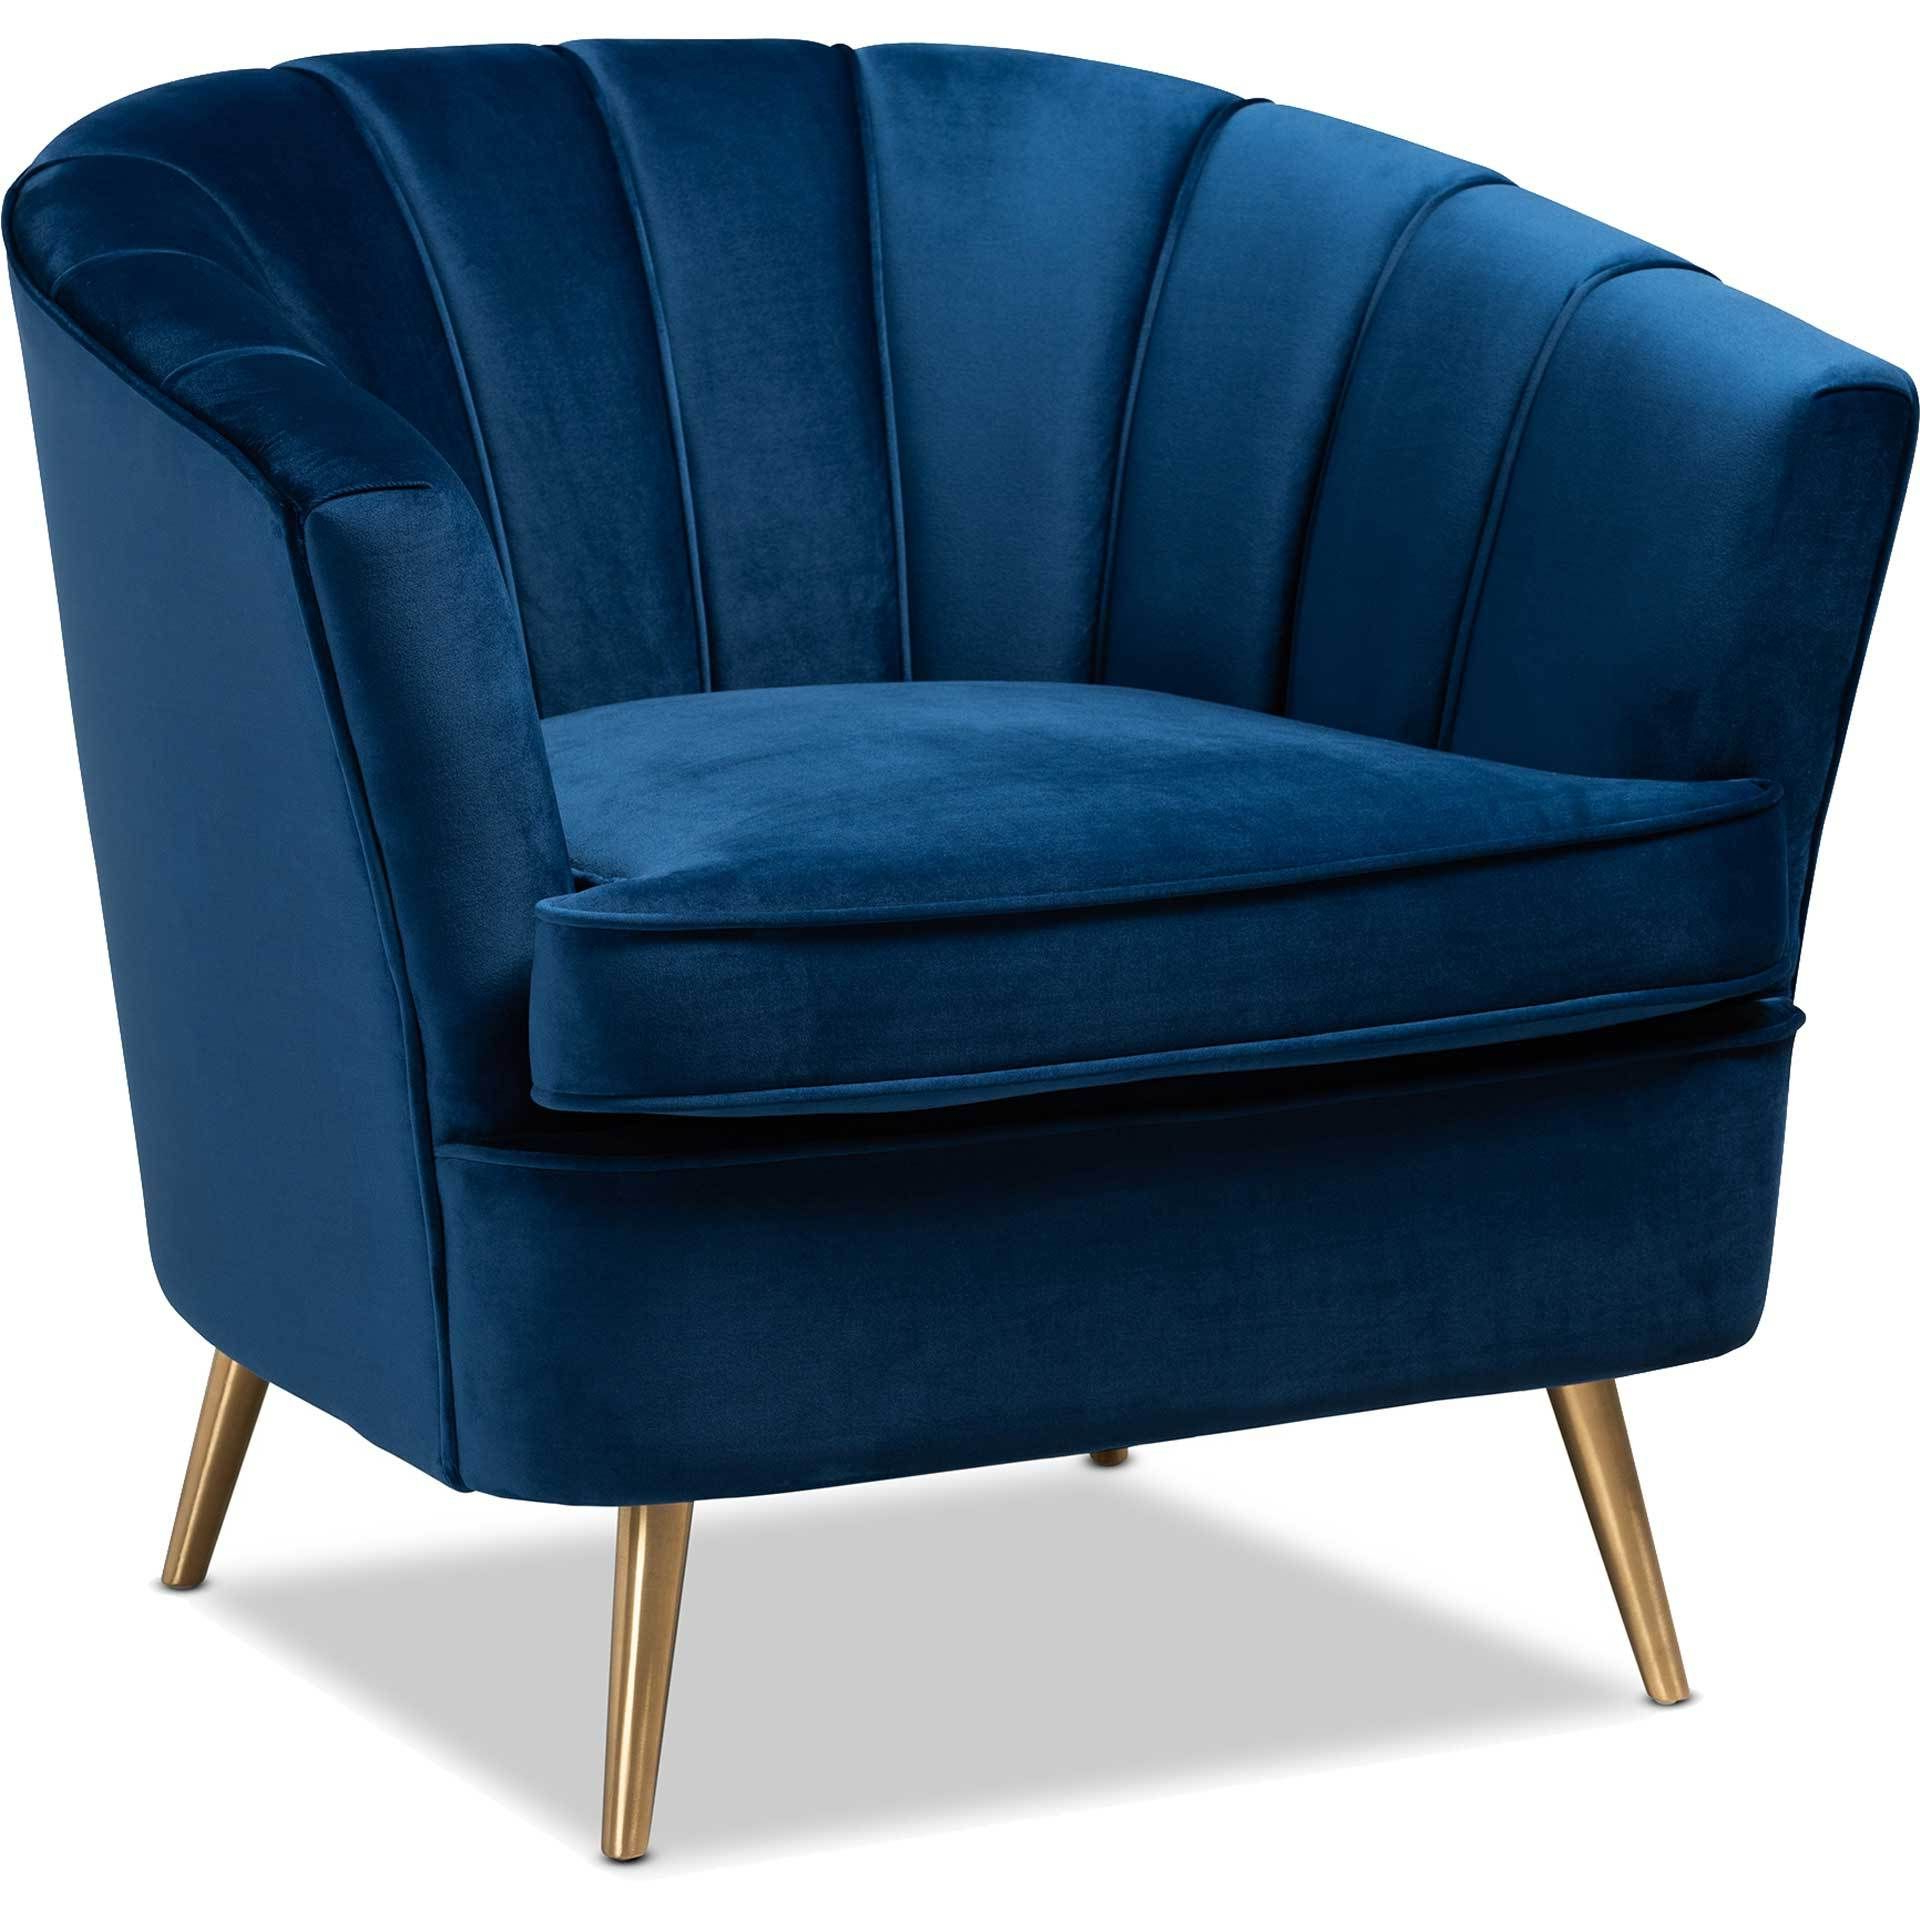 Pin On For The Home Intended For Well Known Hutchinsen Polyester Blend Armchairs (View 4 of 20)